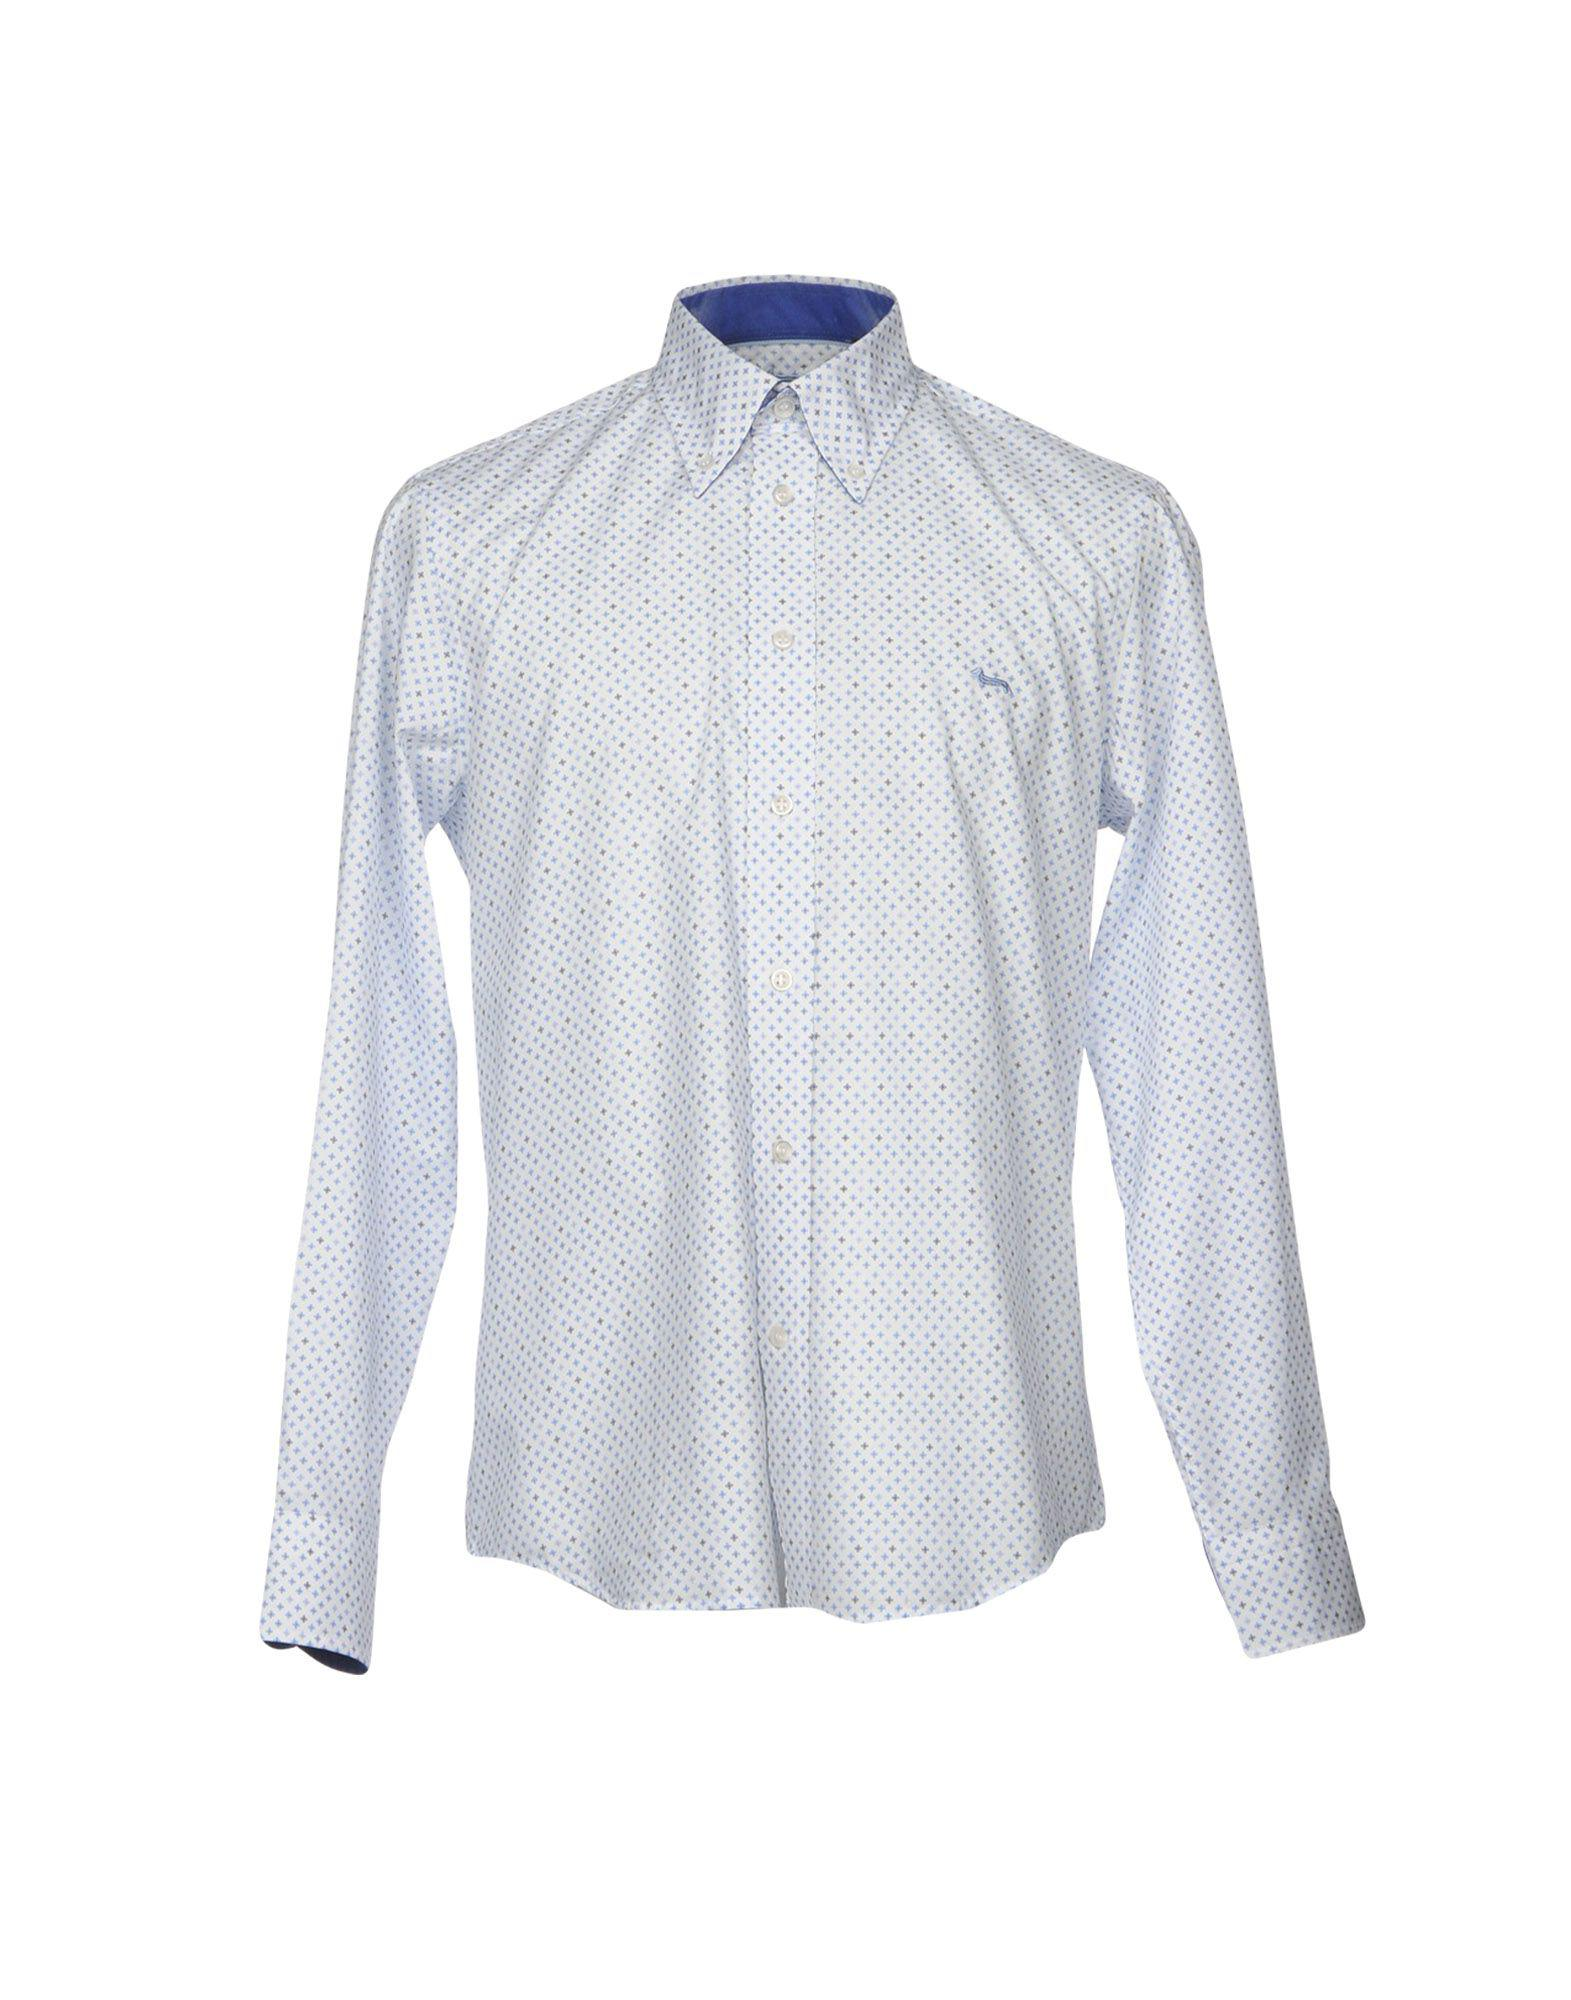 efc5df53 Lyst - Harmont & Blaine Shirts in White for Men